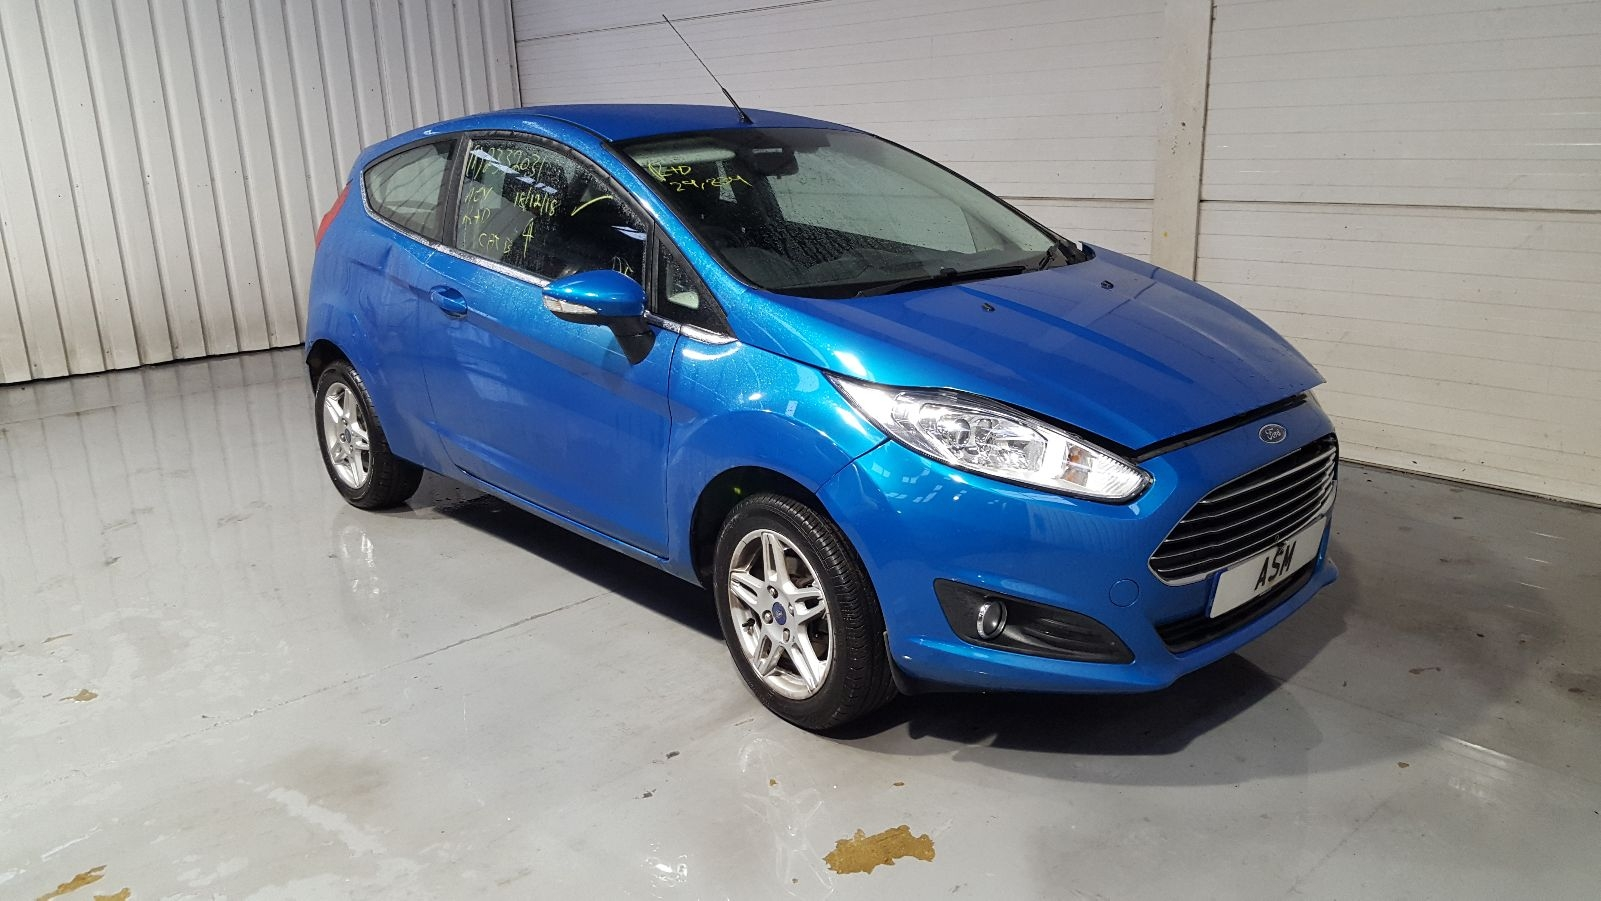 Image for a 2012 Ford Fiesta 1.6 Petrol IQJA Engine